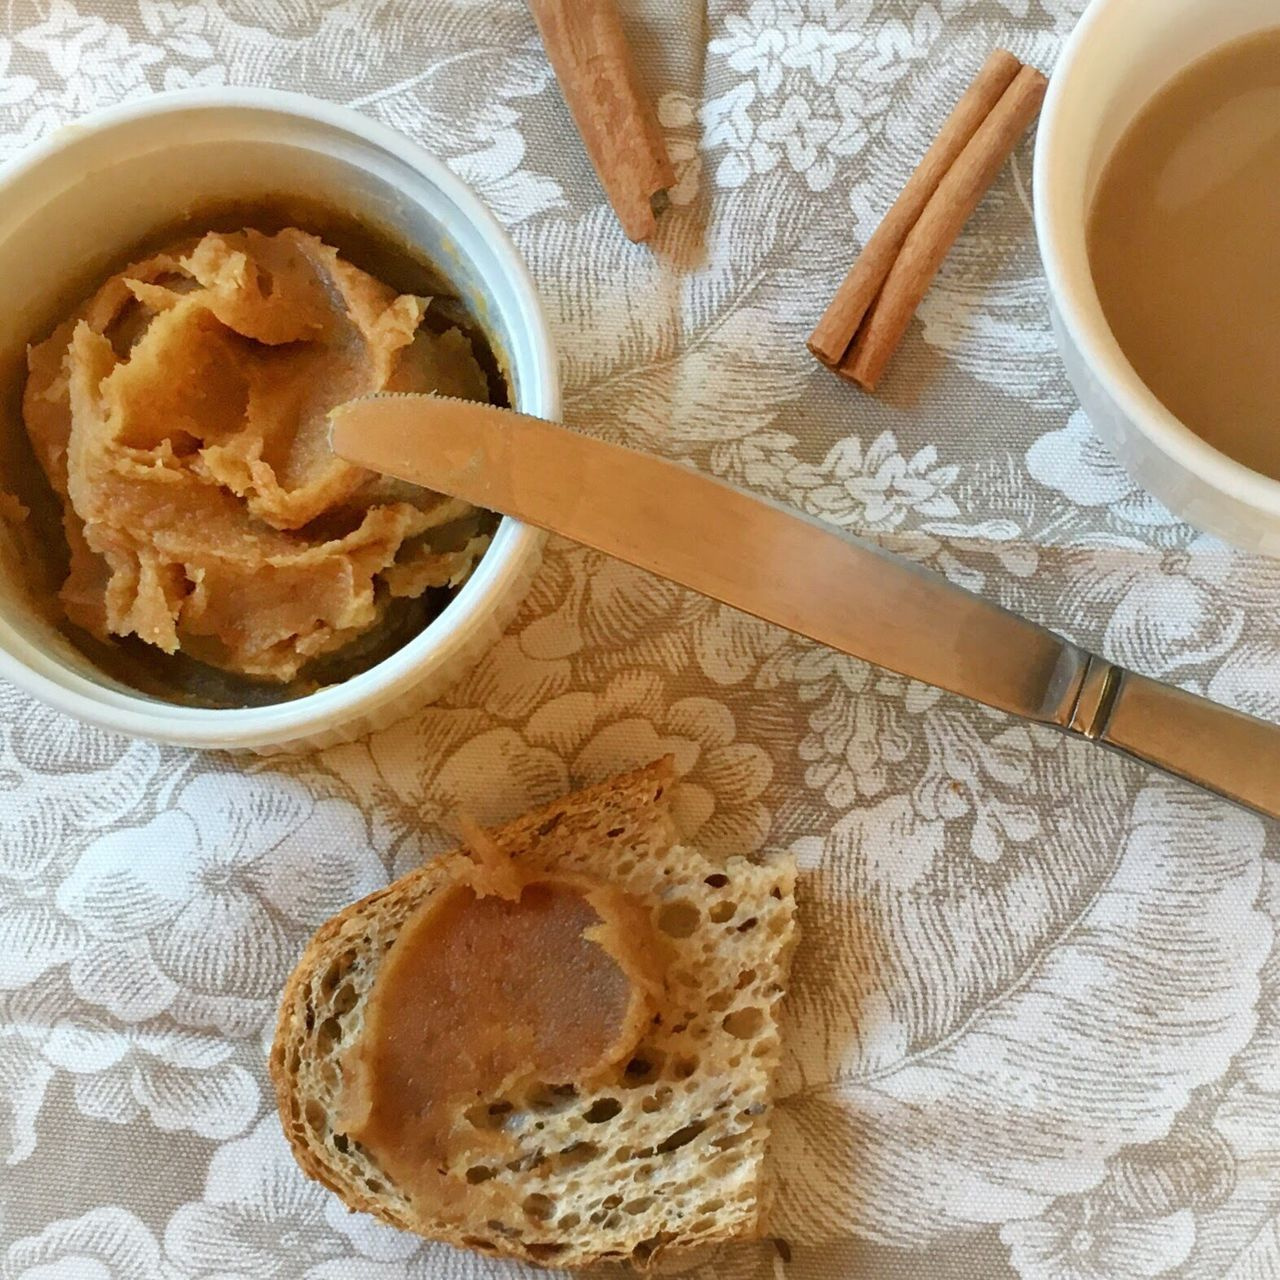 Pear butter and toast morning with a cup of tea Food And Drink Food High Angle View Bread Autumn Close-up Ready-to-eat Arrangement Foodphotography StillLifePhotography Pearbutter Yummy